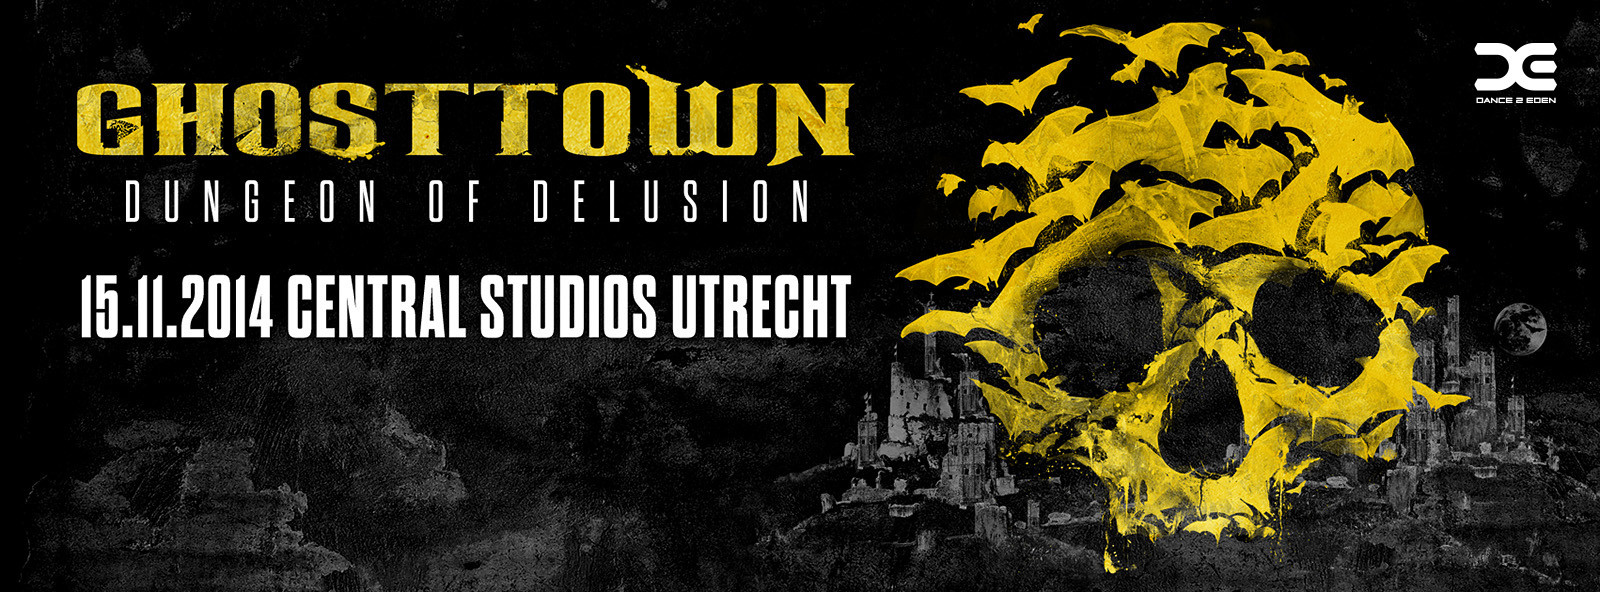 Ghosttown - Dungeon of delusion